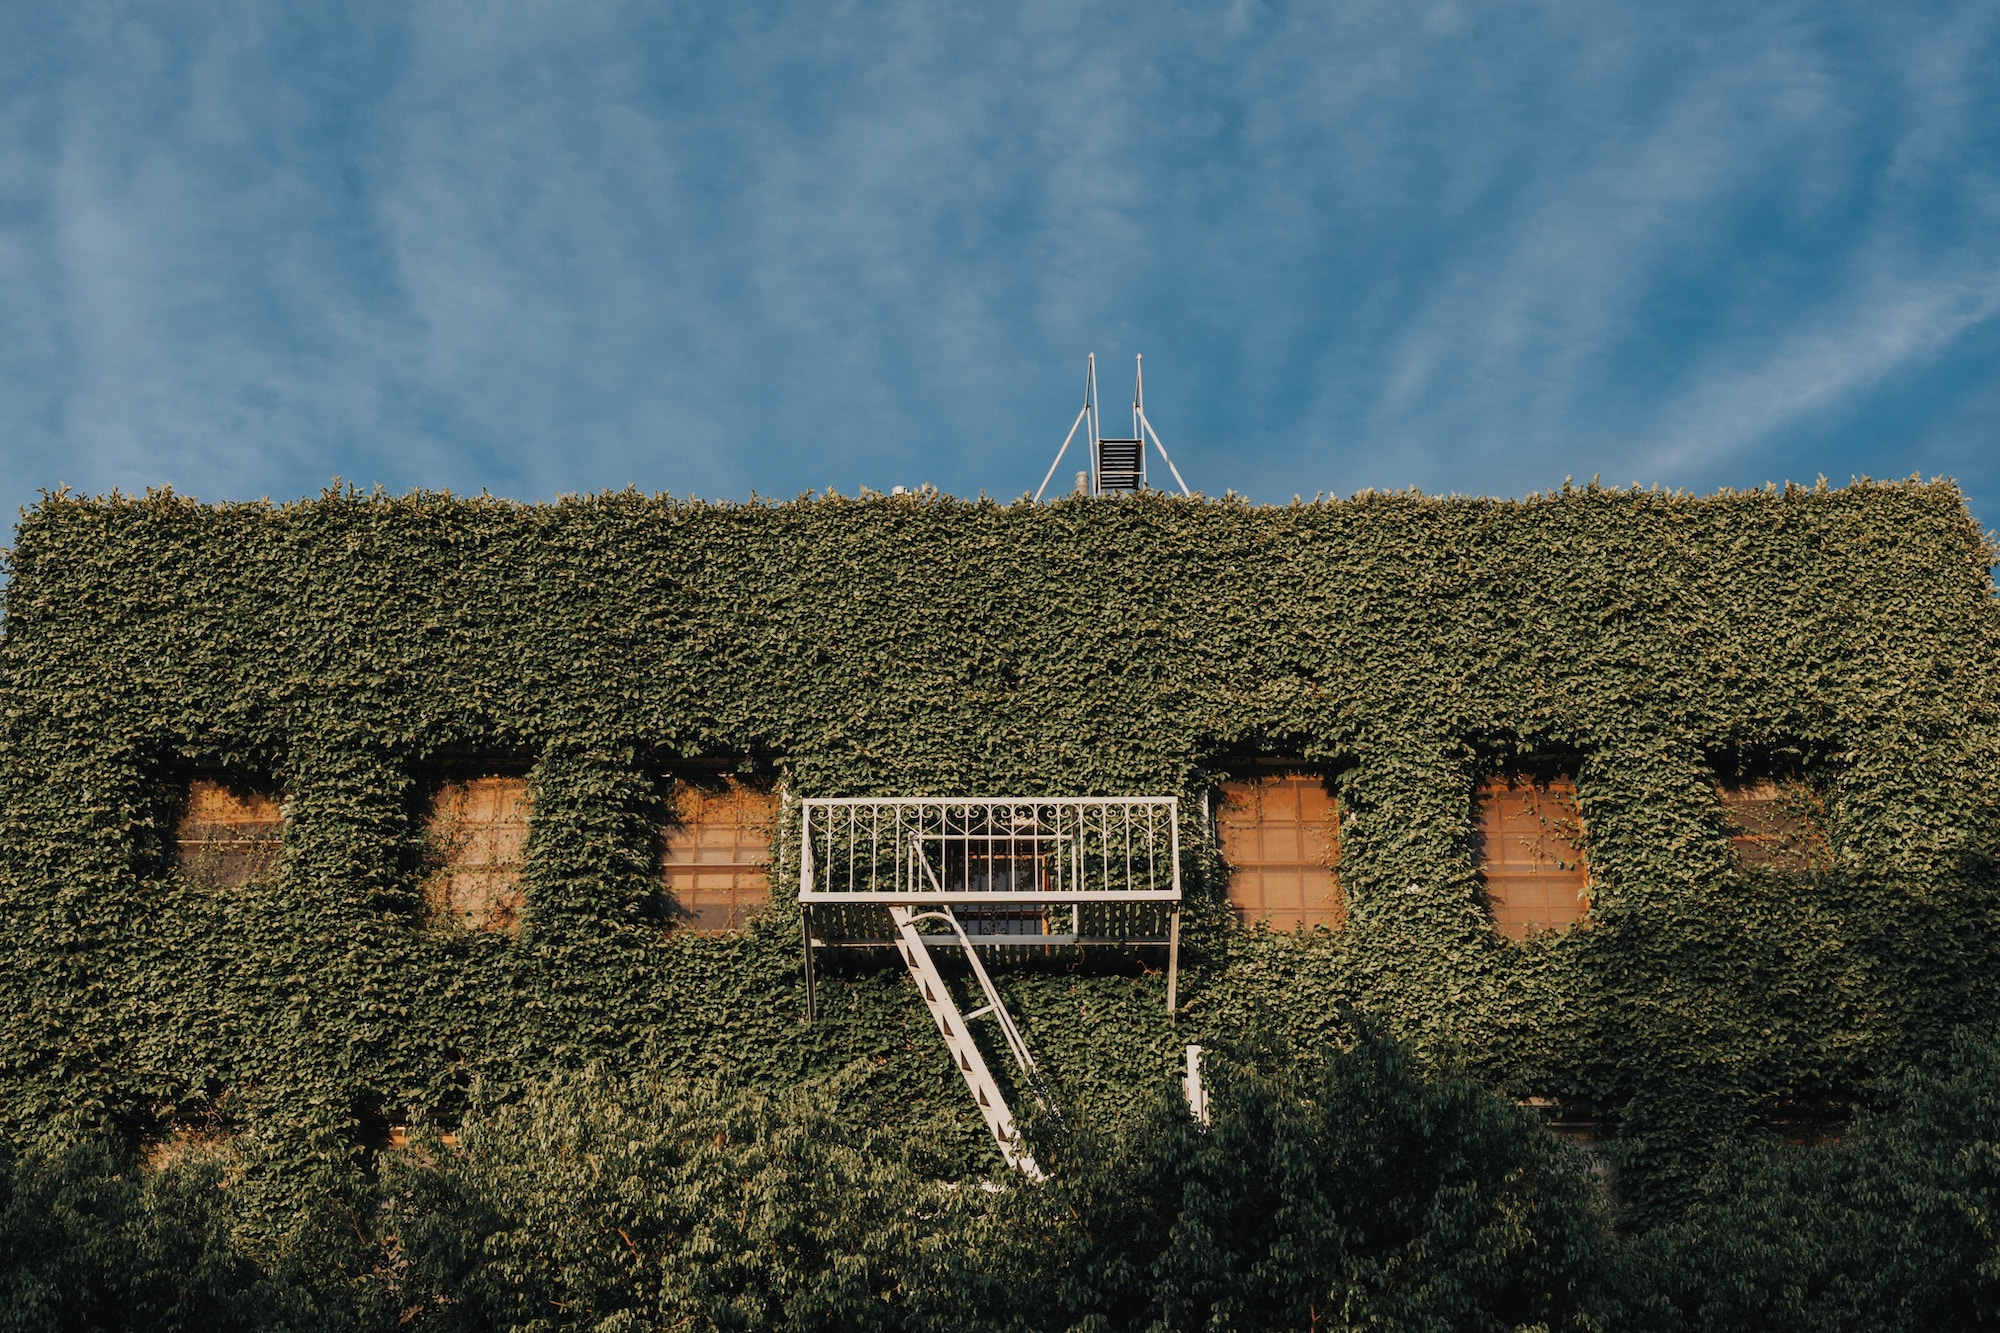 a building is engulfed in vines with only the windows visible